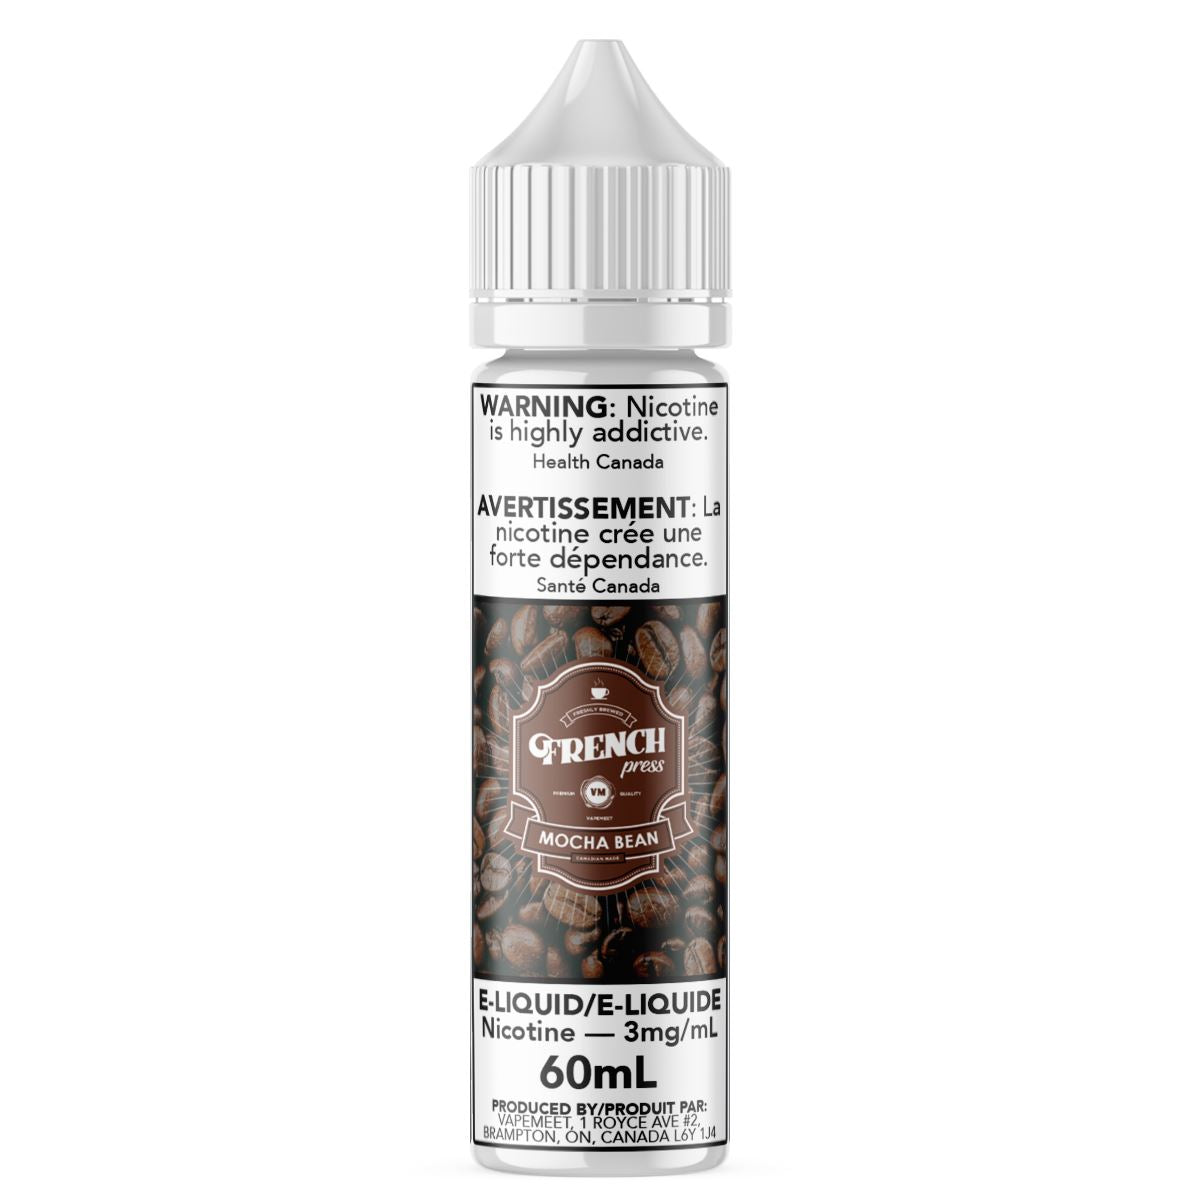 French Press - Mocha Bean E-Liquid French Press 60mL 0 mg/mL